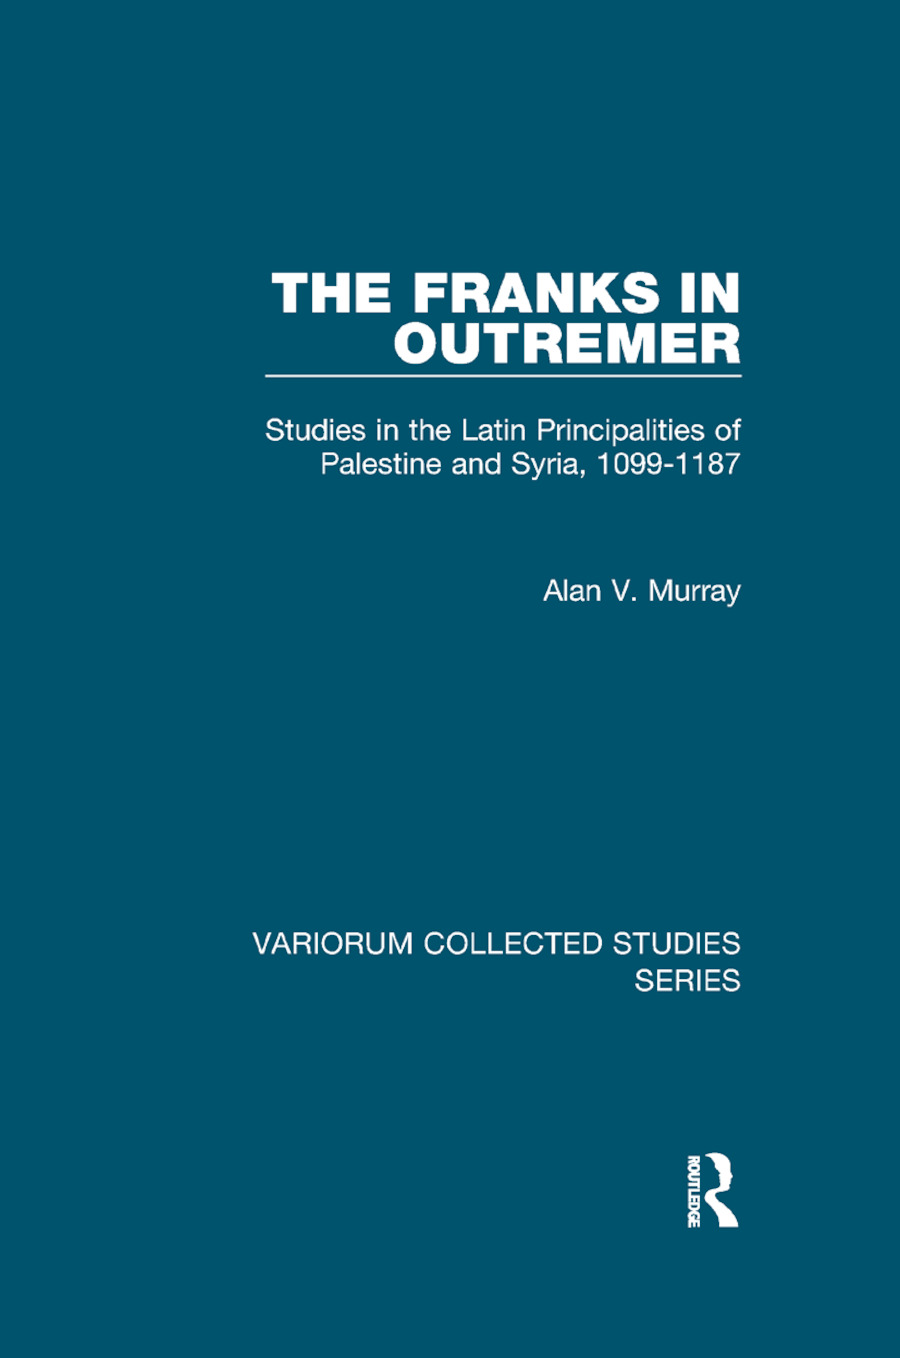 The Franks in Outremer: Studies in the Latin Principalities of Palestine and Syria, 1099-1187 book cover